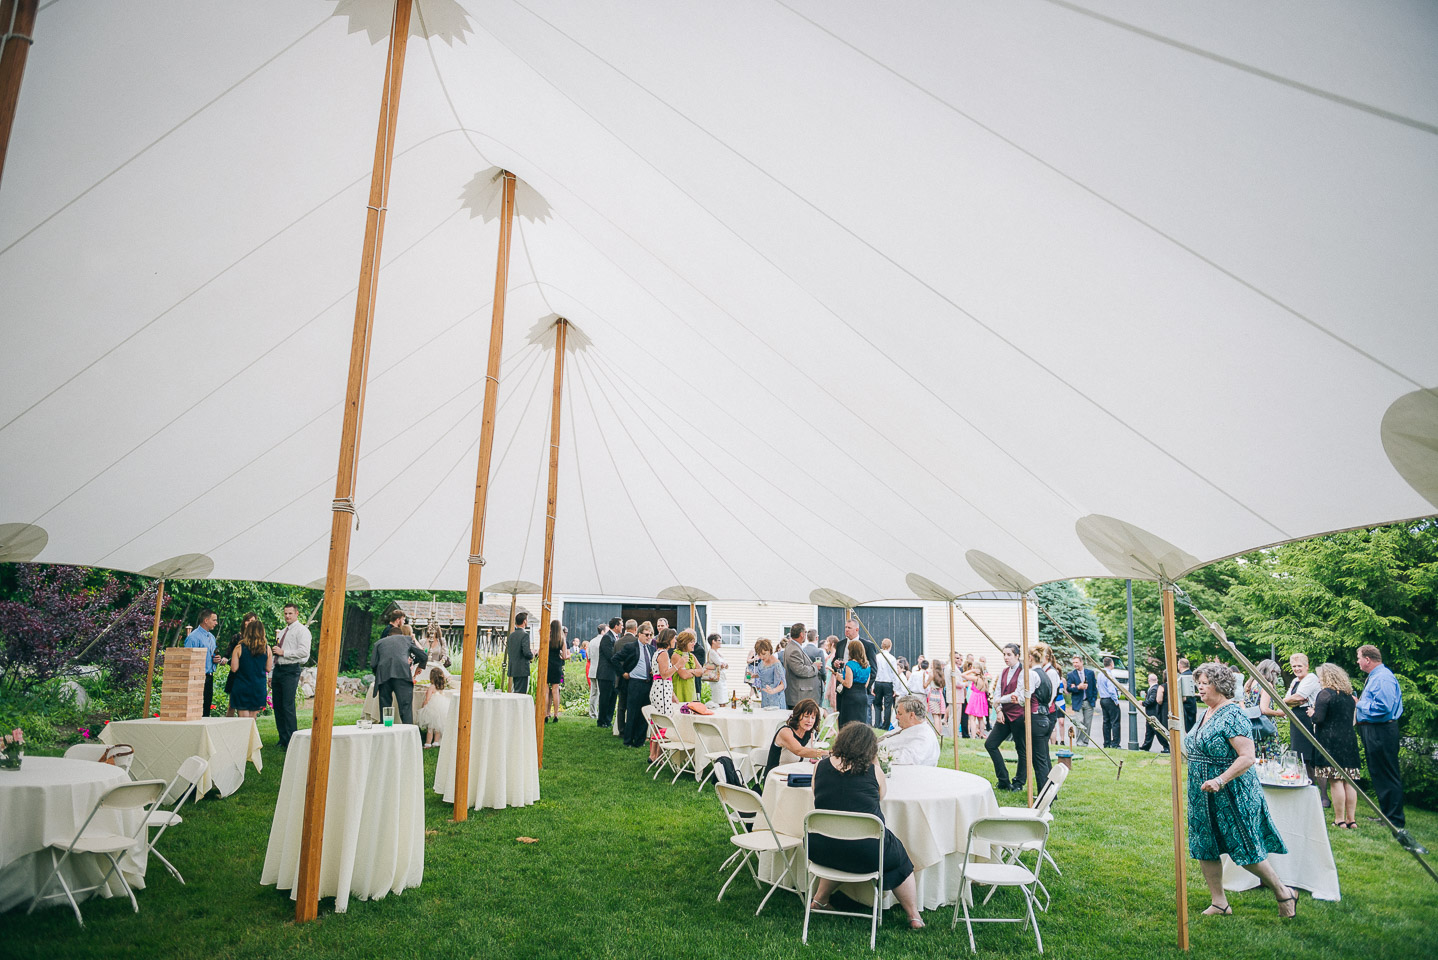 NH Wedding Photography: cocktail hour at Bedford Village Inn